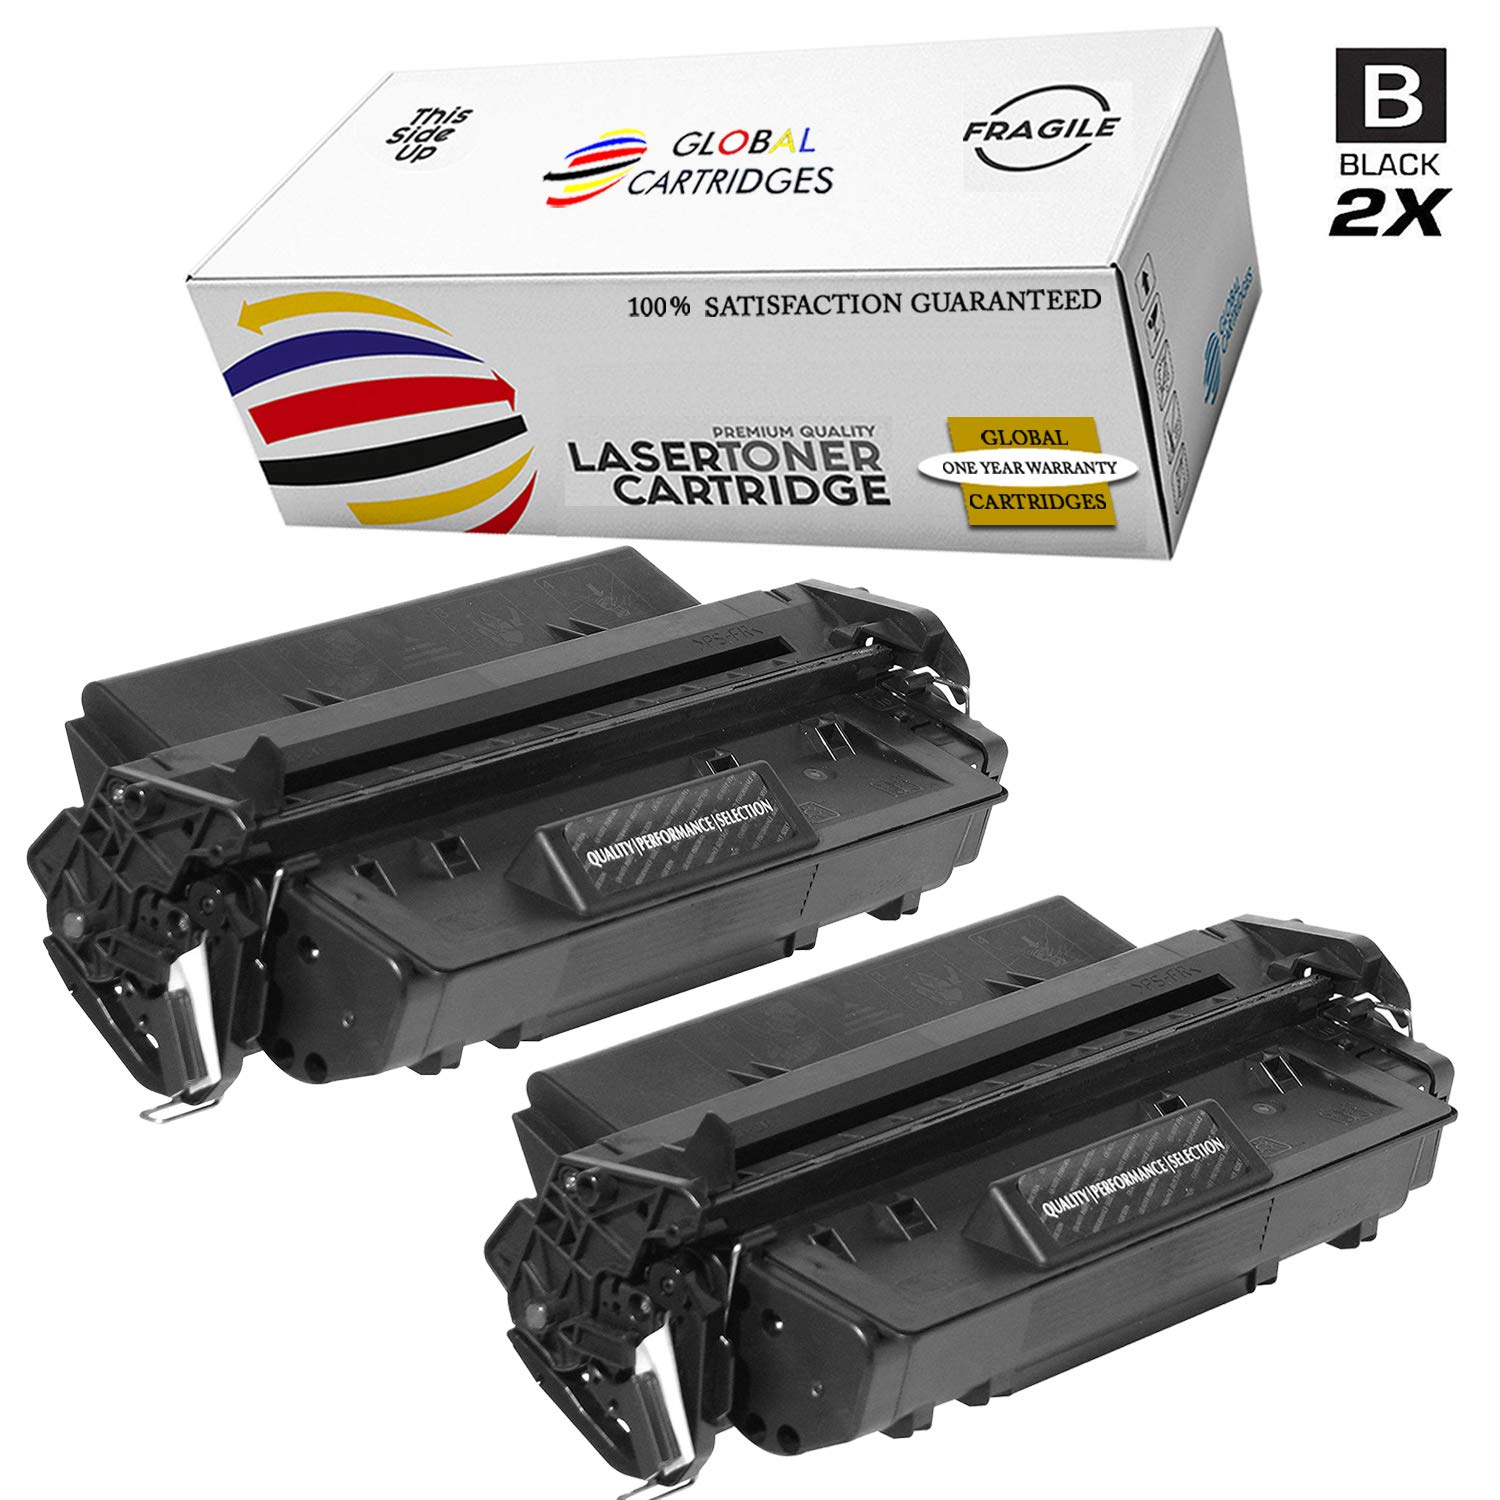 GLB Premium Quality Compatible Replacement For HP 96A / HP C4096A Black Laser Toner Cartridge for HP LaserJet 2100, 2100M, 2100se,2100TN,2100xi,2200, 2200D,2200DN,2200DT,2200DTN Printers(2-Pack)